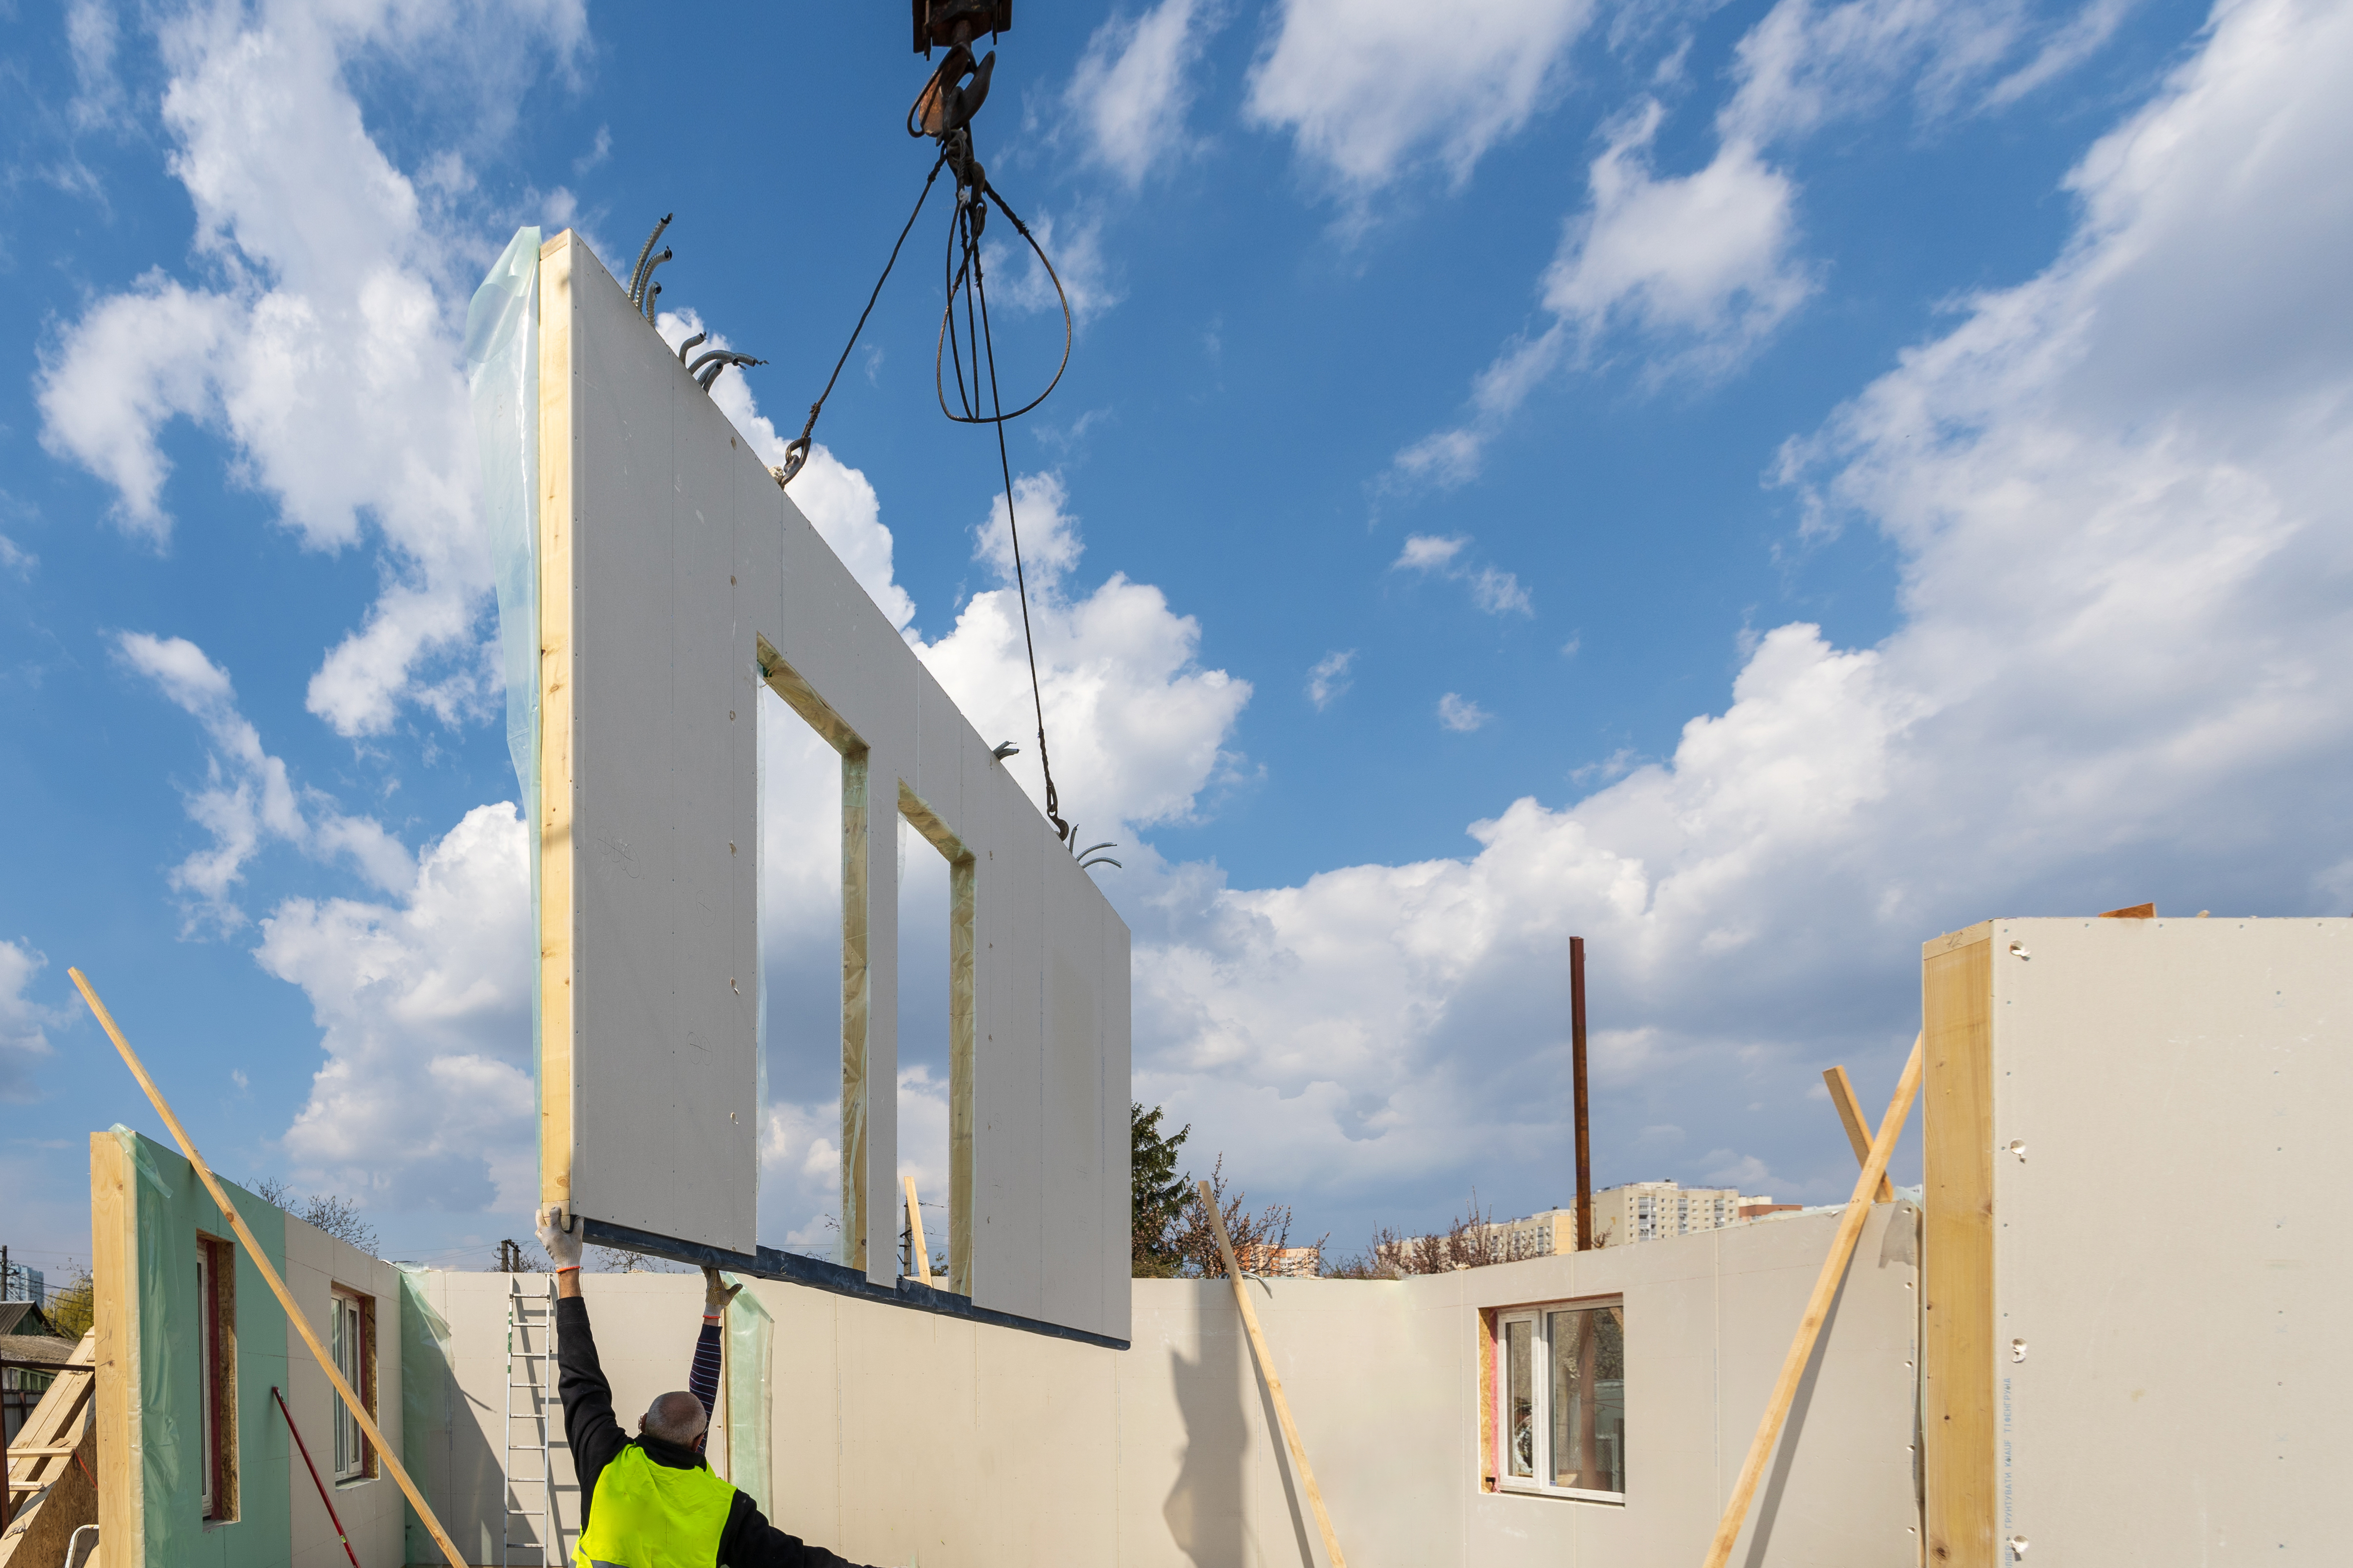 A construction site showing modular construction with a panel being lifted by a crane to fit one side of a building.